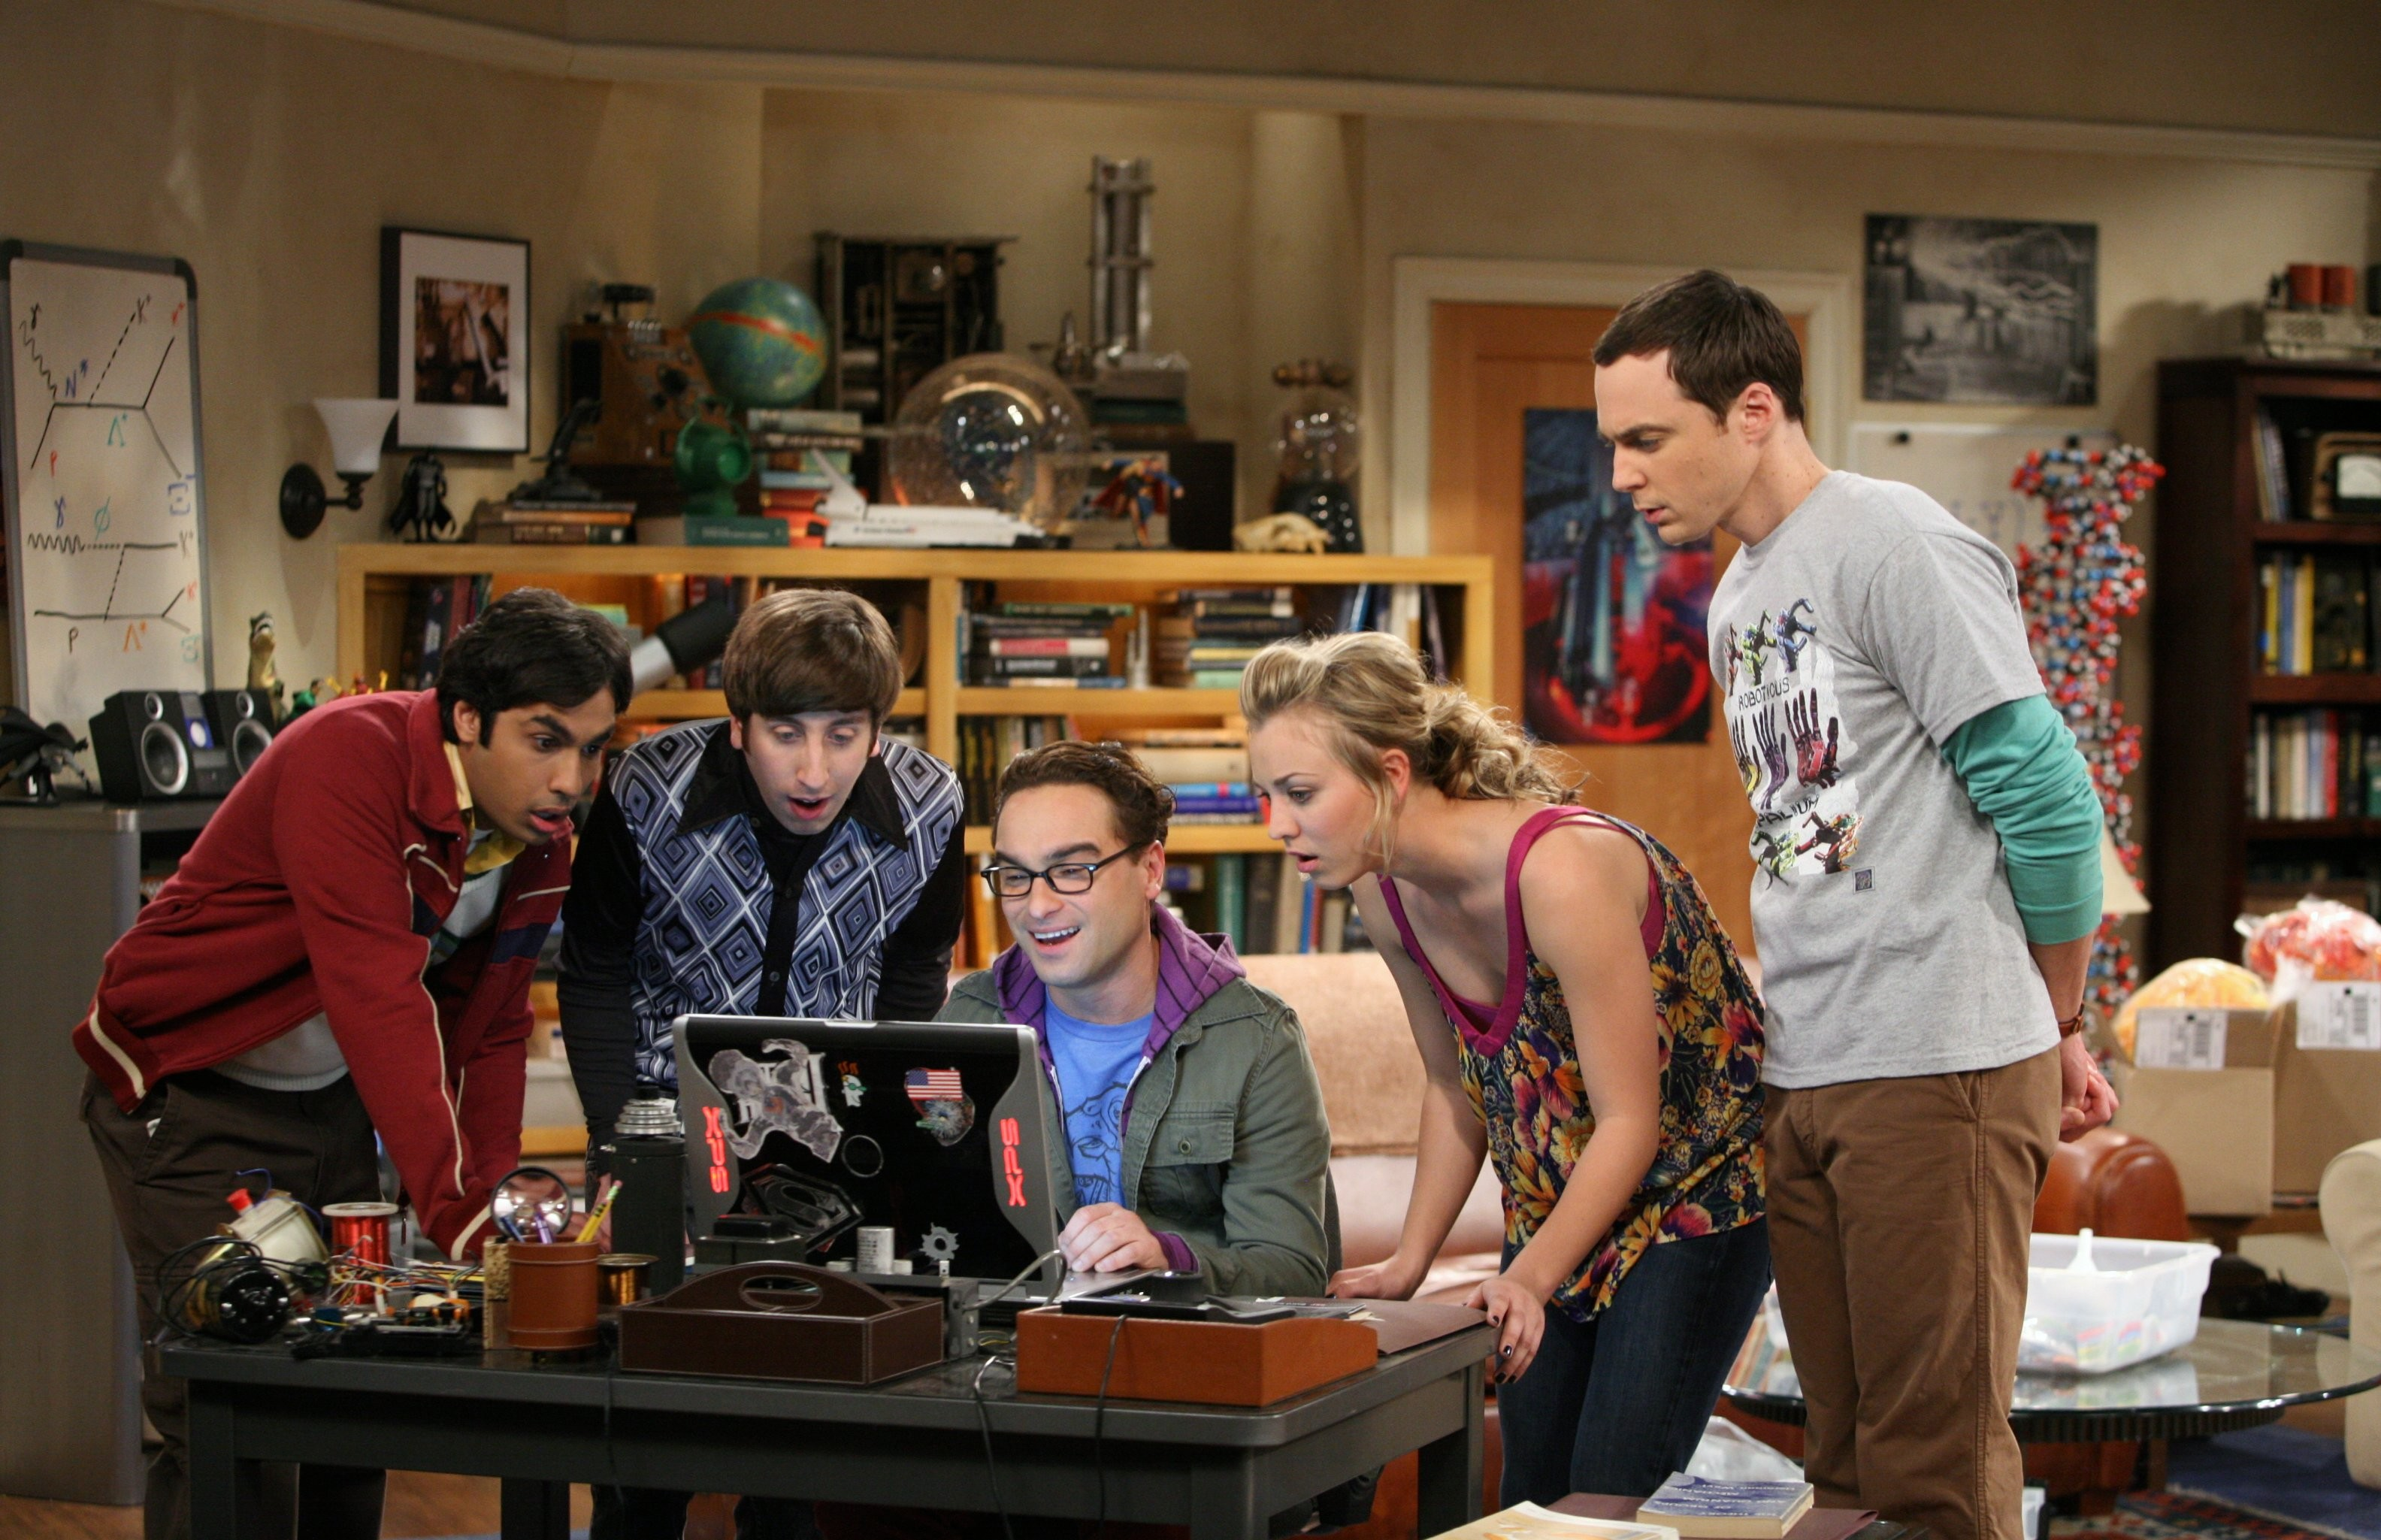 The Big Bang Theory - Series 02 Episode 18 The Work Song Nanocluster Characters names Sheldon, Penny, Leonard, Howard, Raj © Warner Bros. Entertainment, Inc.  TL, sky pics